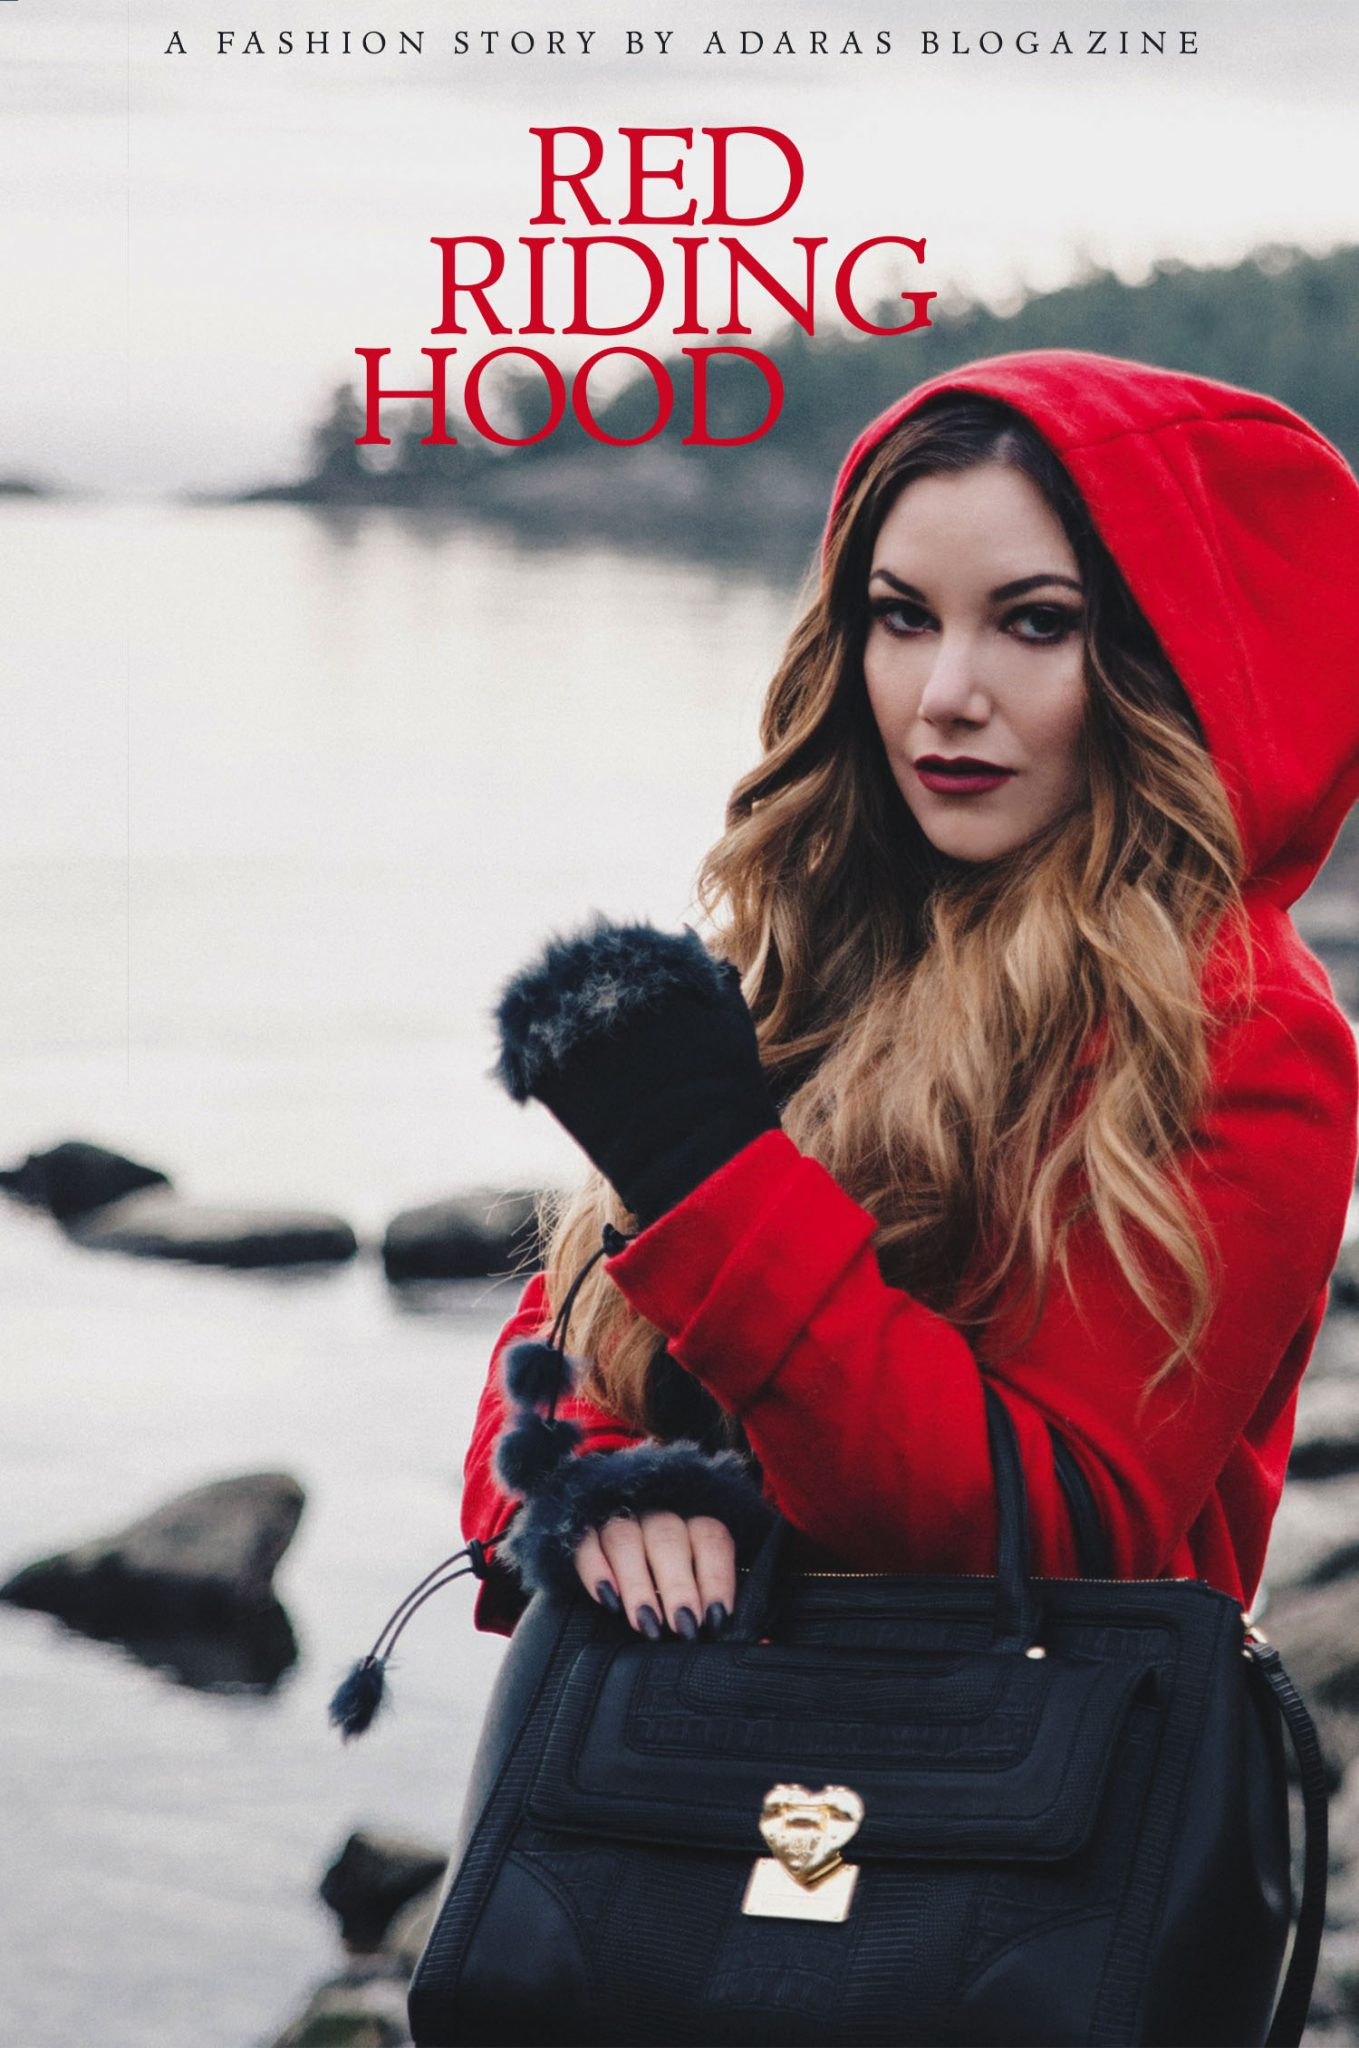 Little Red Riding Hood Fashion Story